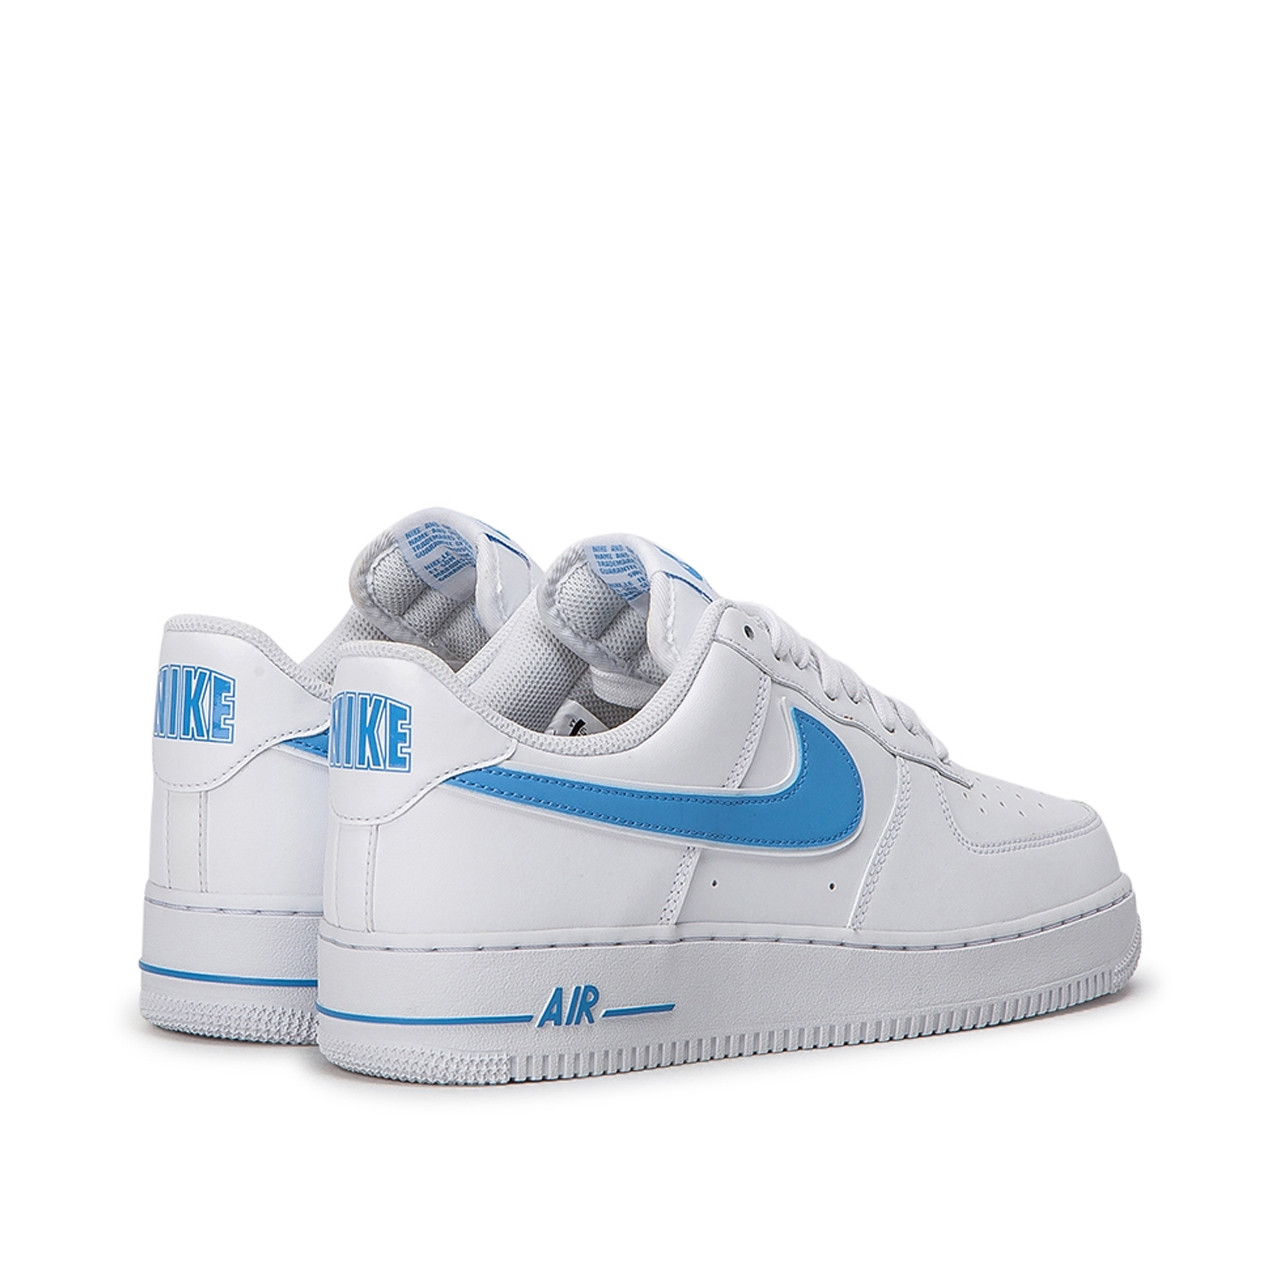 Nike Blau Nike Air Force 1 '07 3 (weiss / Blau) Ao2423-100